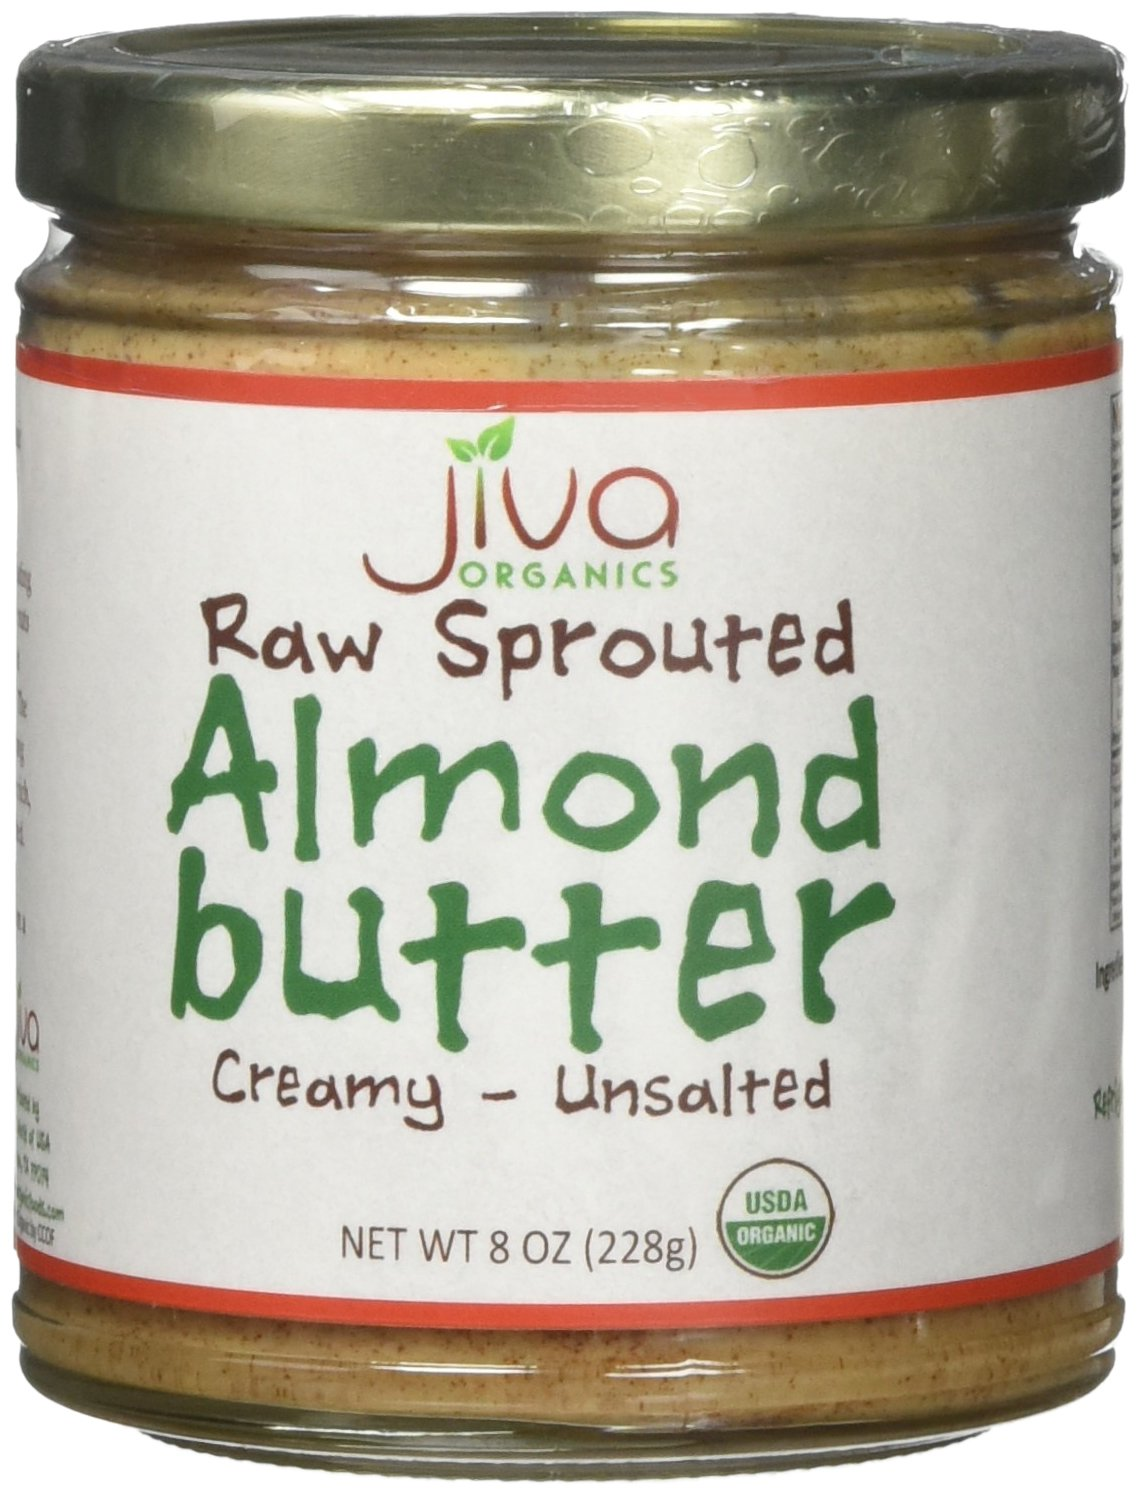 Jiva Organics RAW SPROUTED Organic Almond Butter 8-Ounce Jar